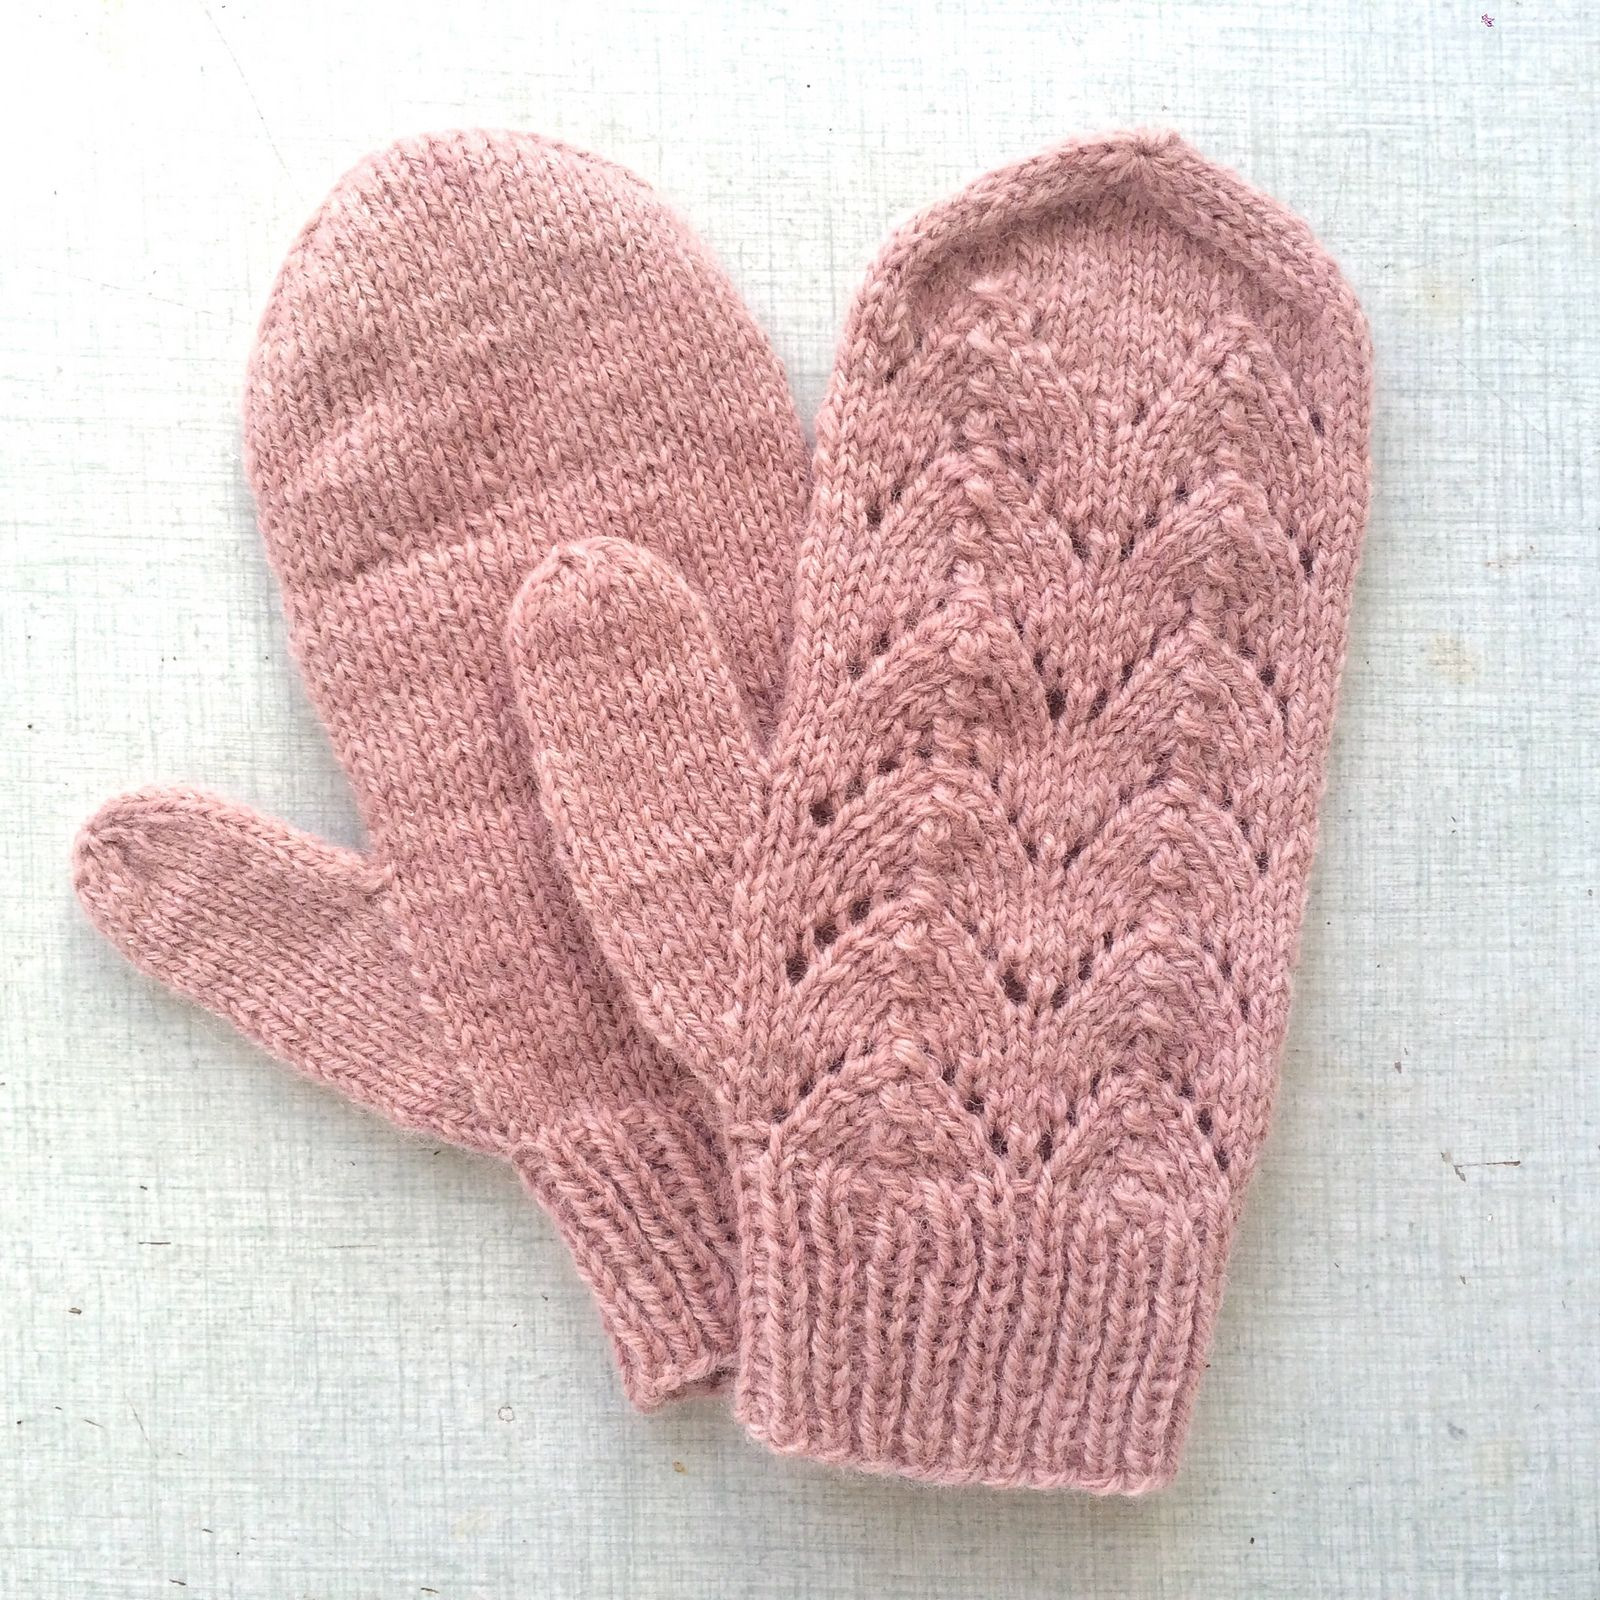 Simple Autumn Mittens By Halldora J - Free Knitting Pattern ...